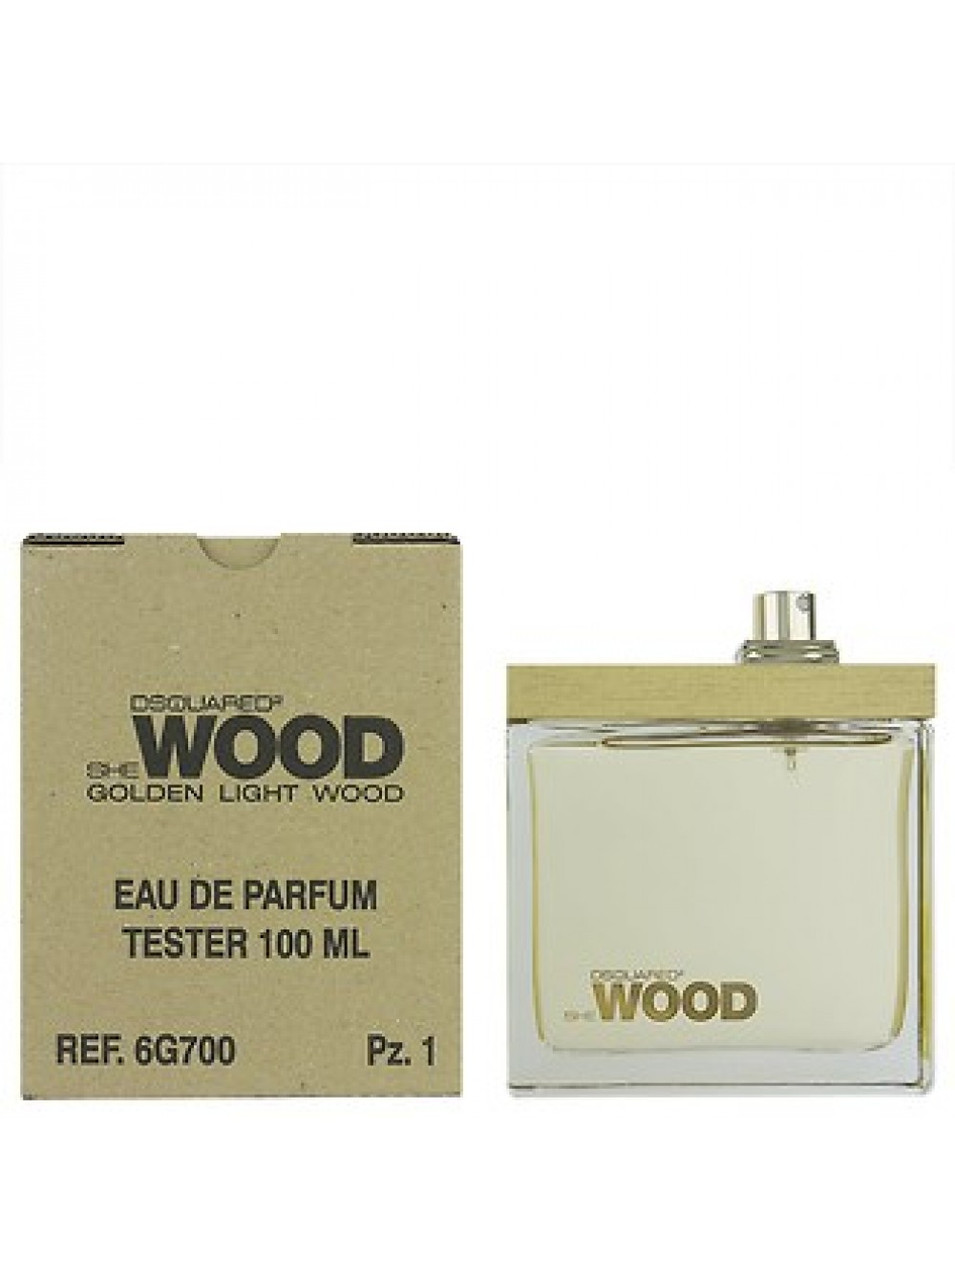 Dsquared2 She Wood Golden Light Wood edp tester 100ml